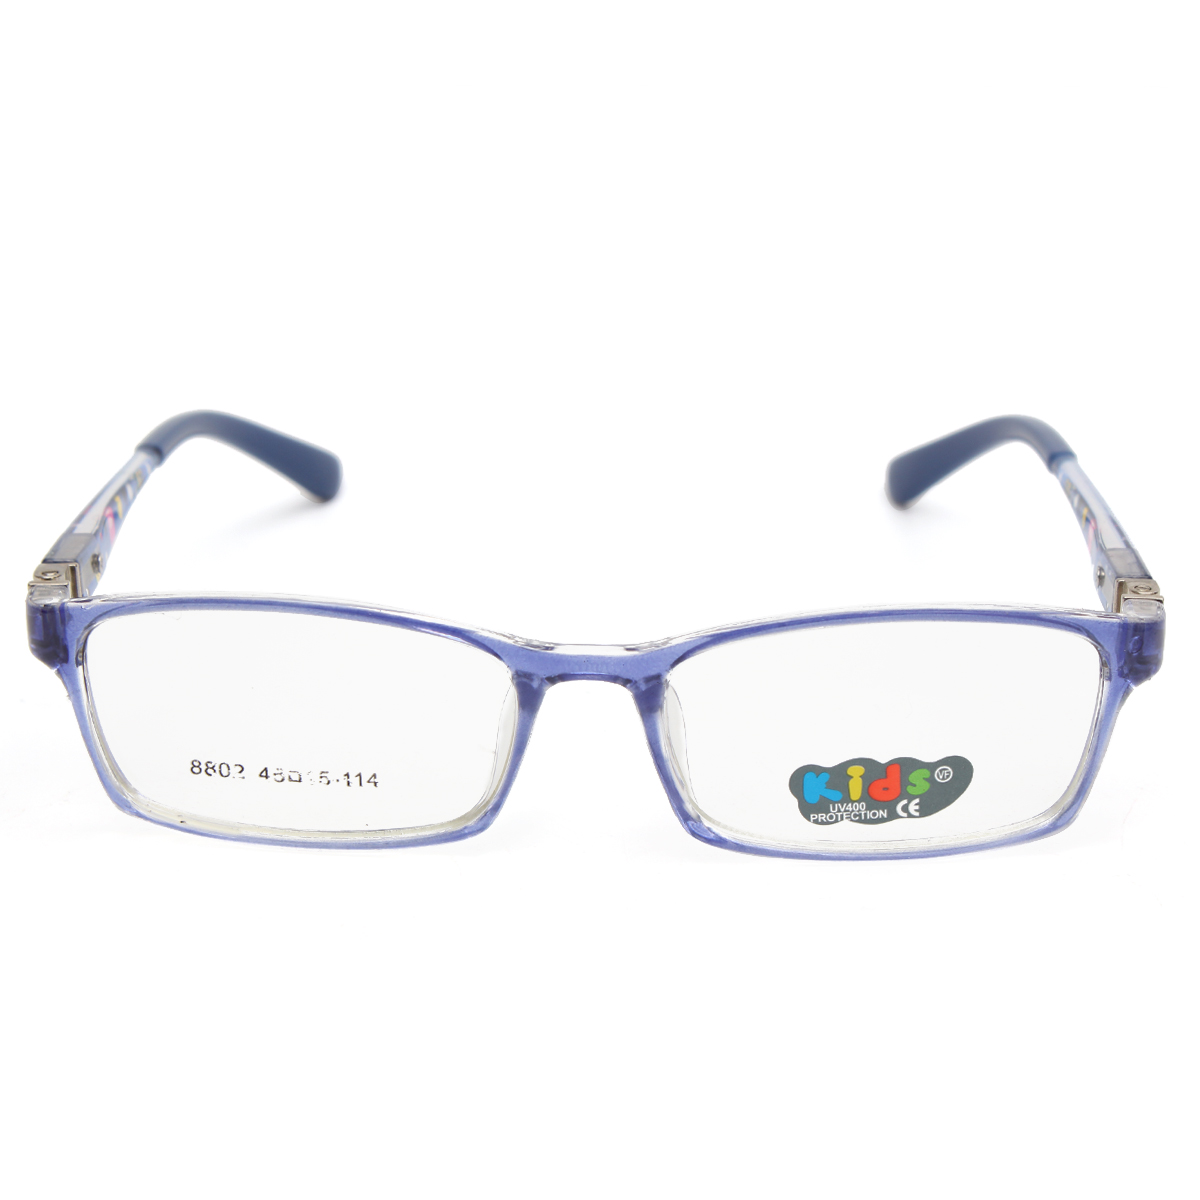 Child's Glasses Girl Boy Children Myopia Eyeglasses Frame Optical Eyewear